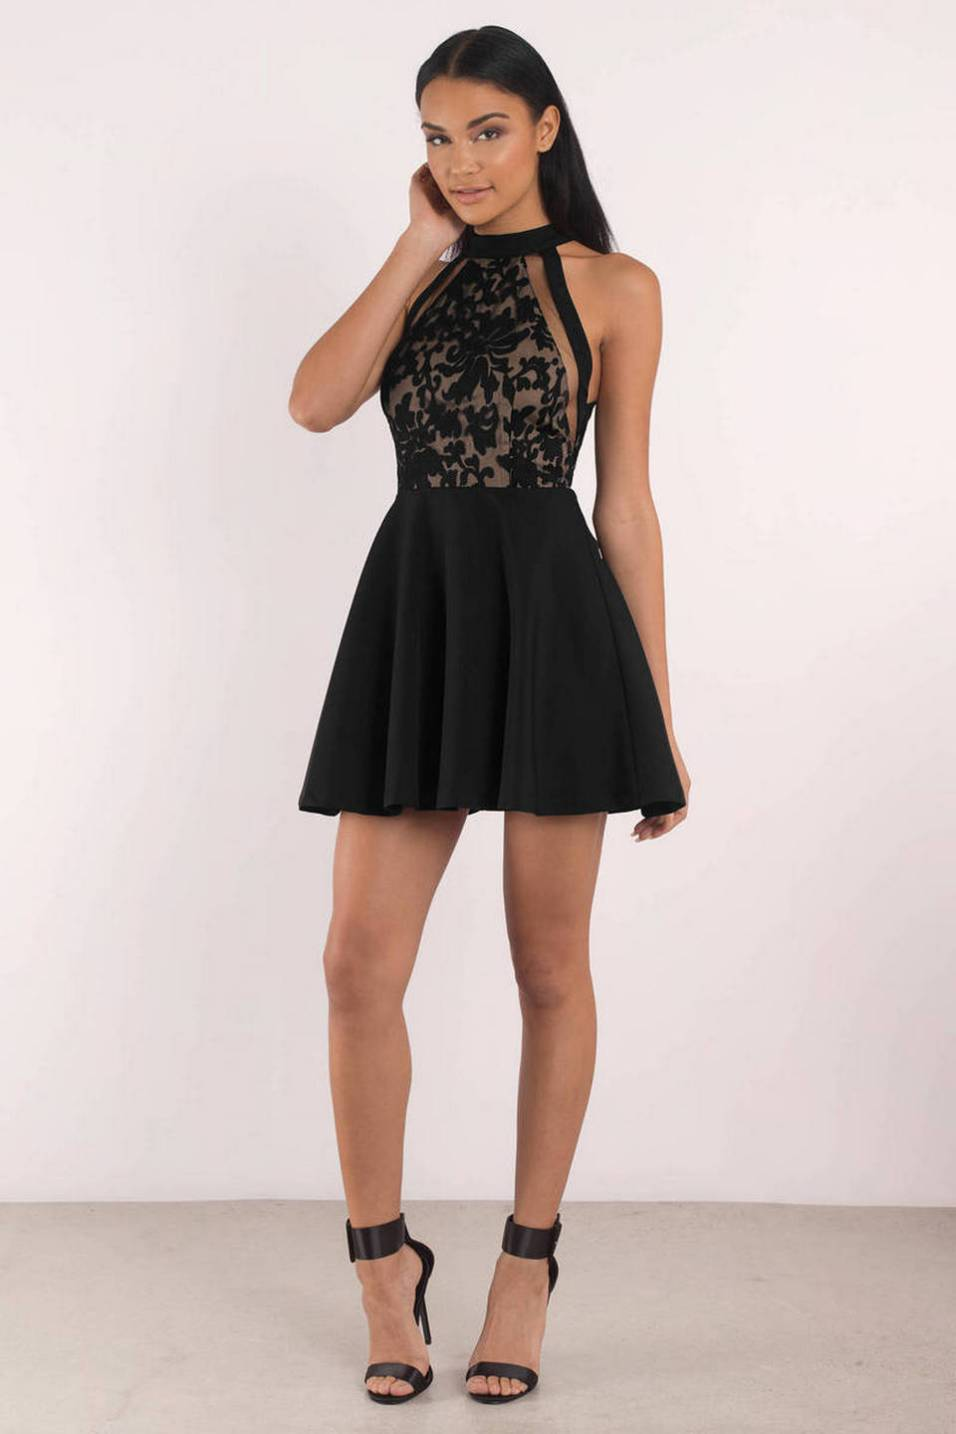 30 About ideas skater dress black That You Need to See 23